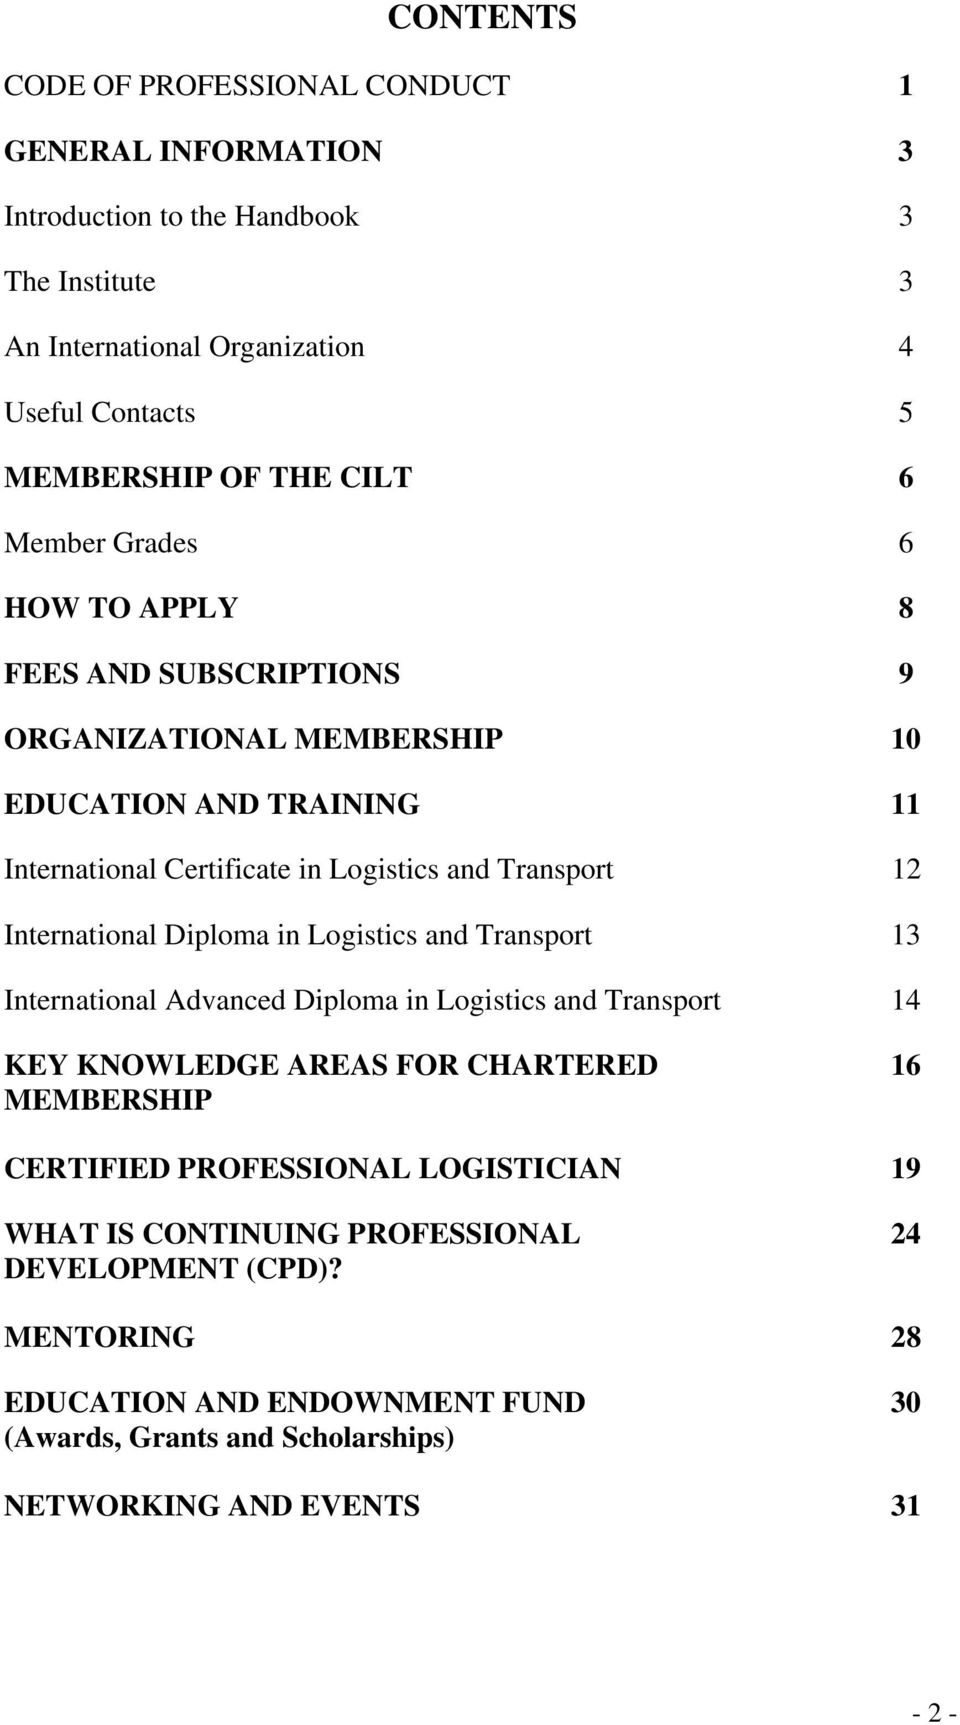 The Chartered Institute of Logistics & Transport - International - PDF